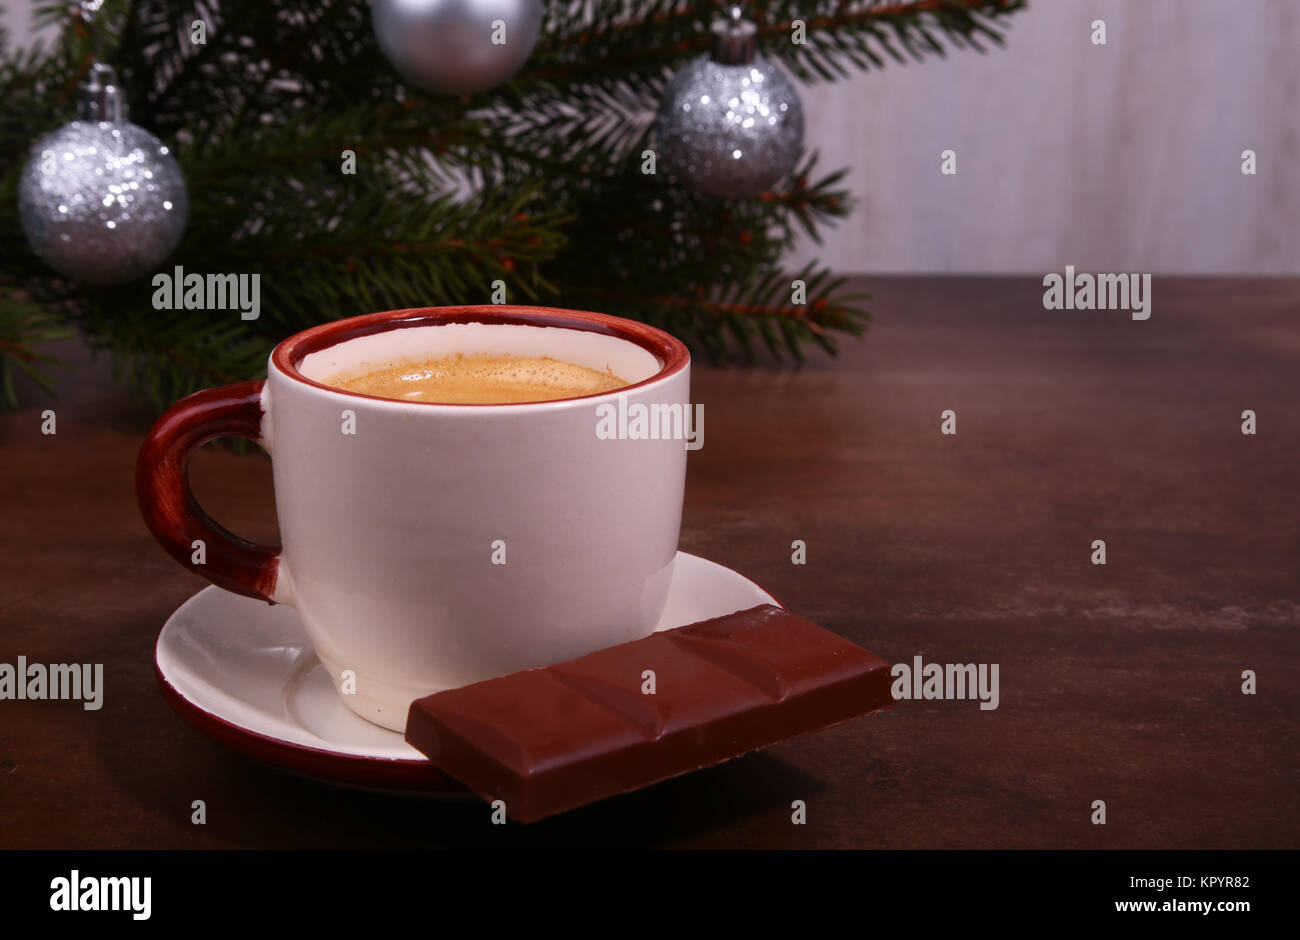 Coffee cup and chocolate on wooden table texture. Coffeebreak. Christmas time - Stock Image